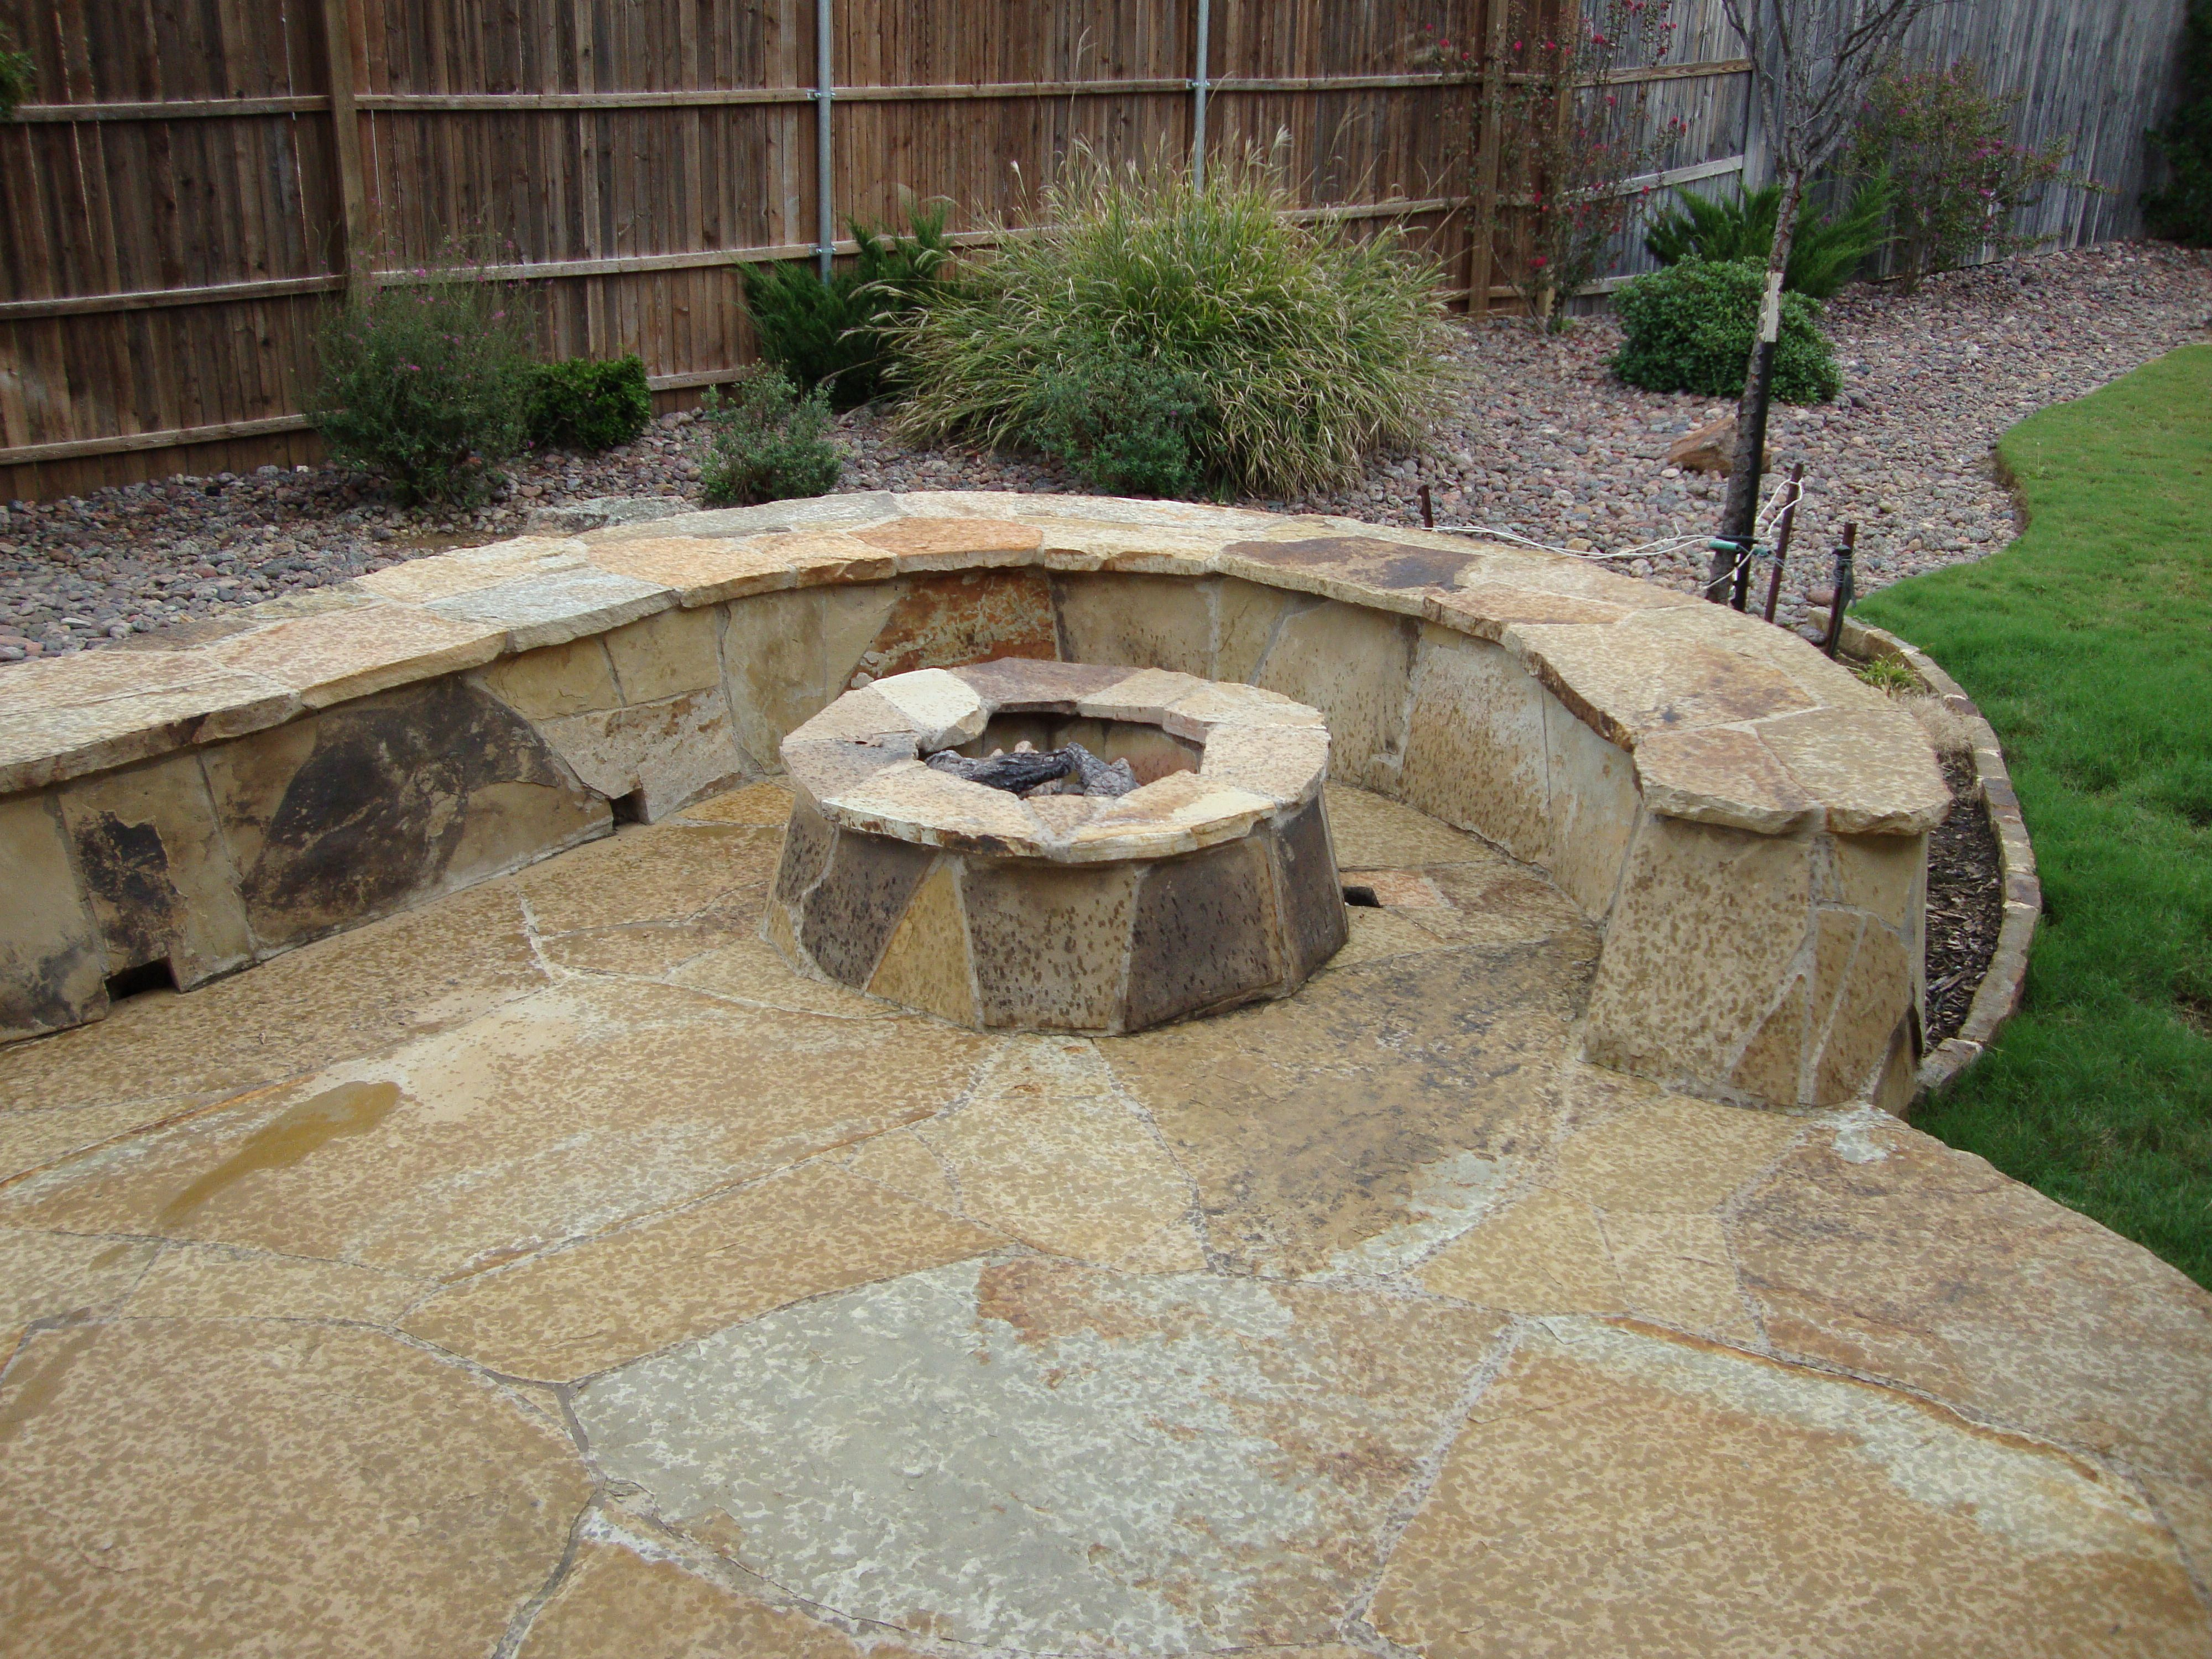 designs for patios and decks patio ideas 4000x3000 fort worth